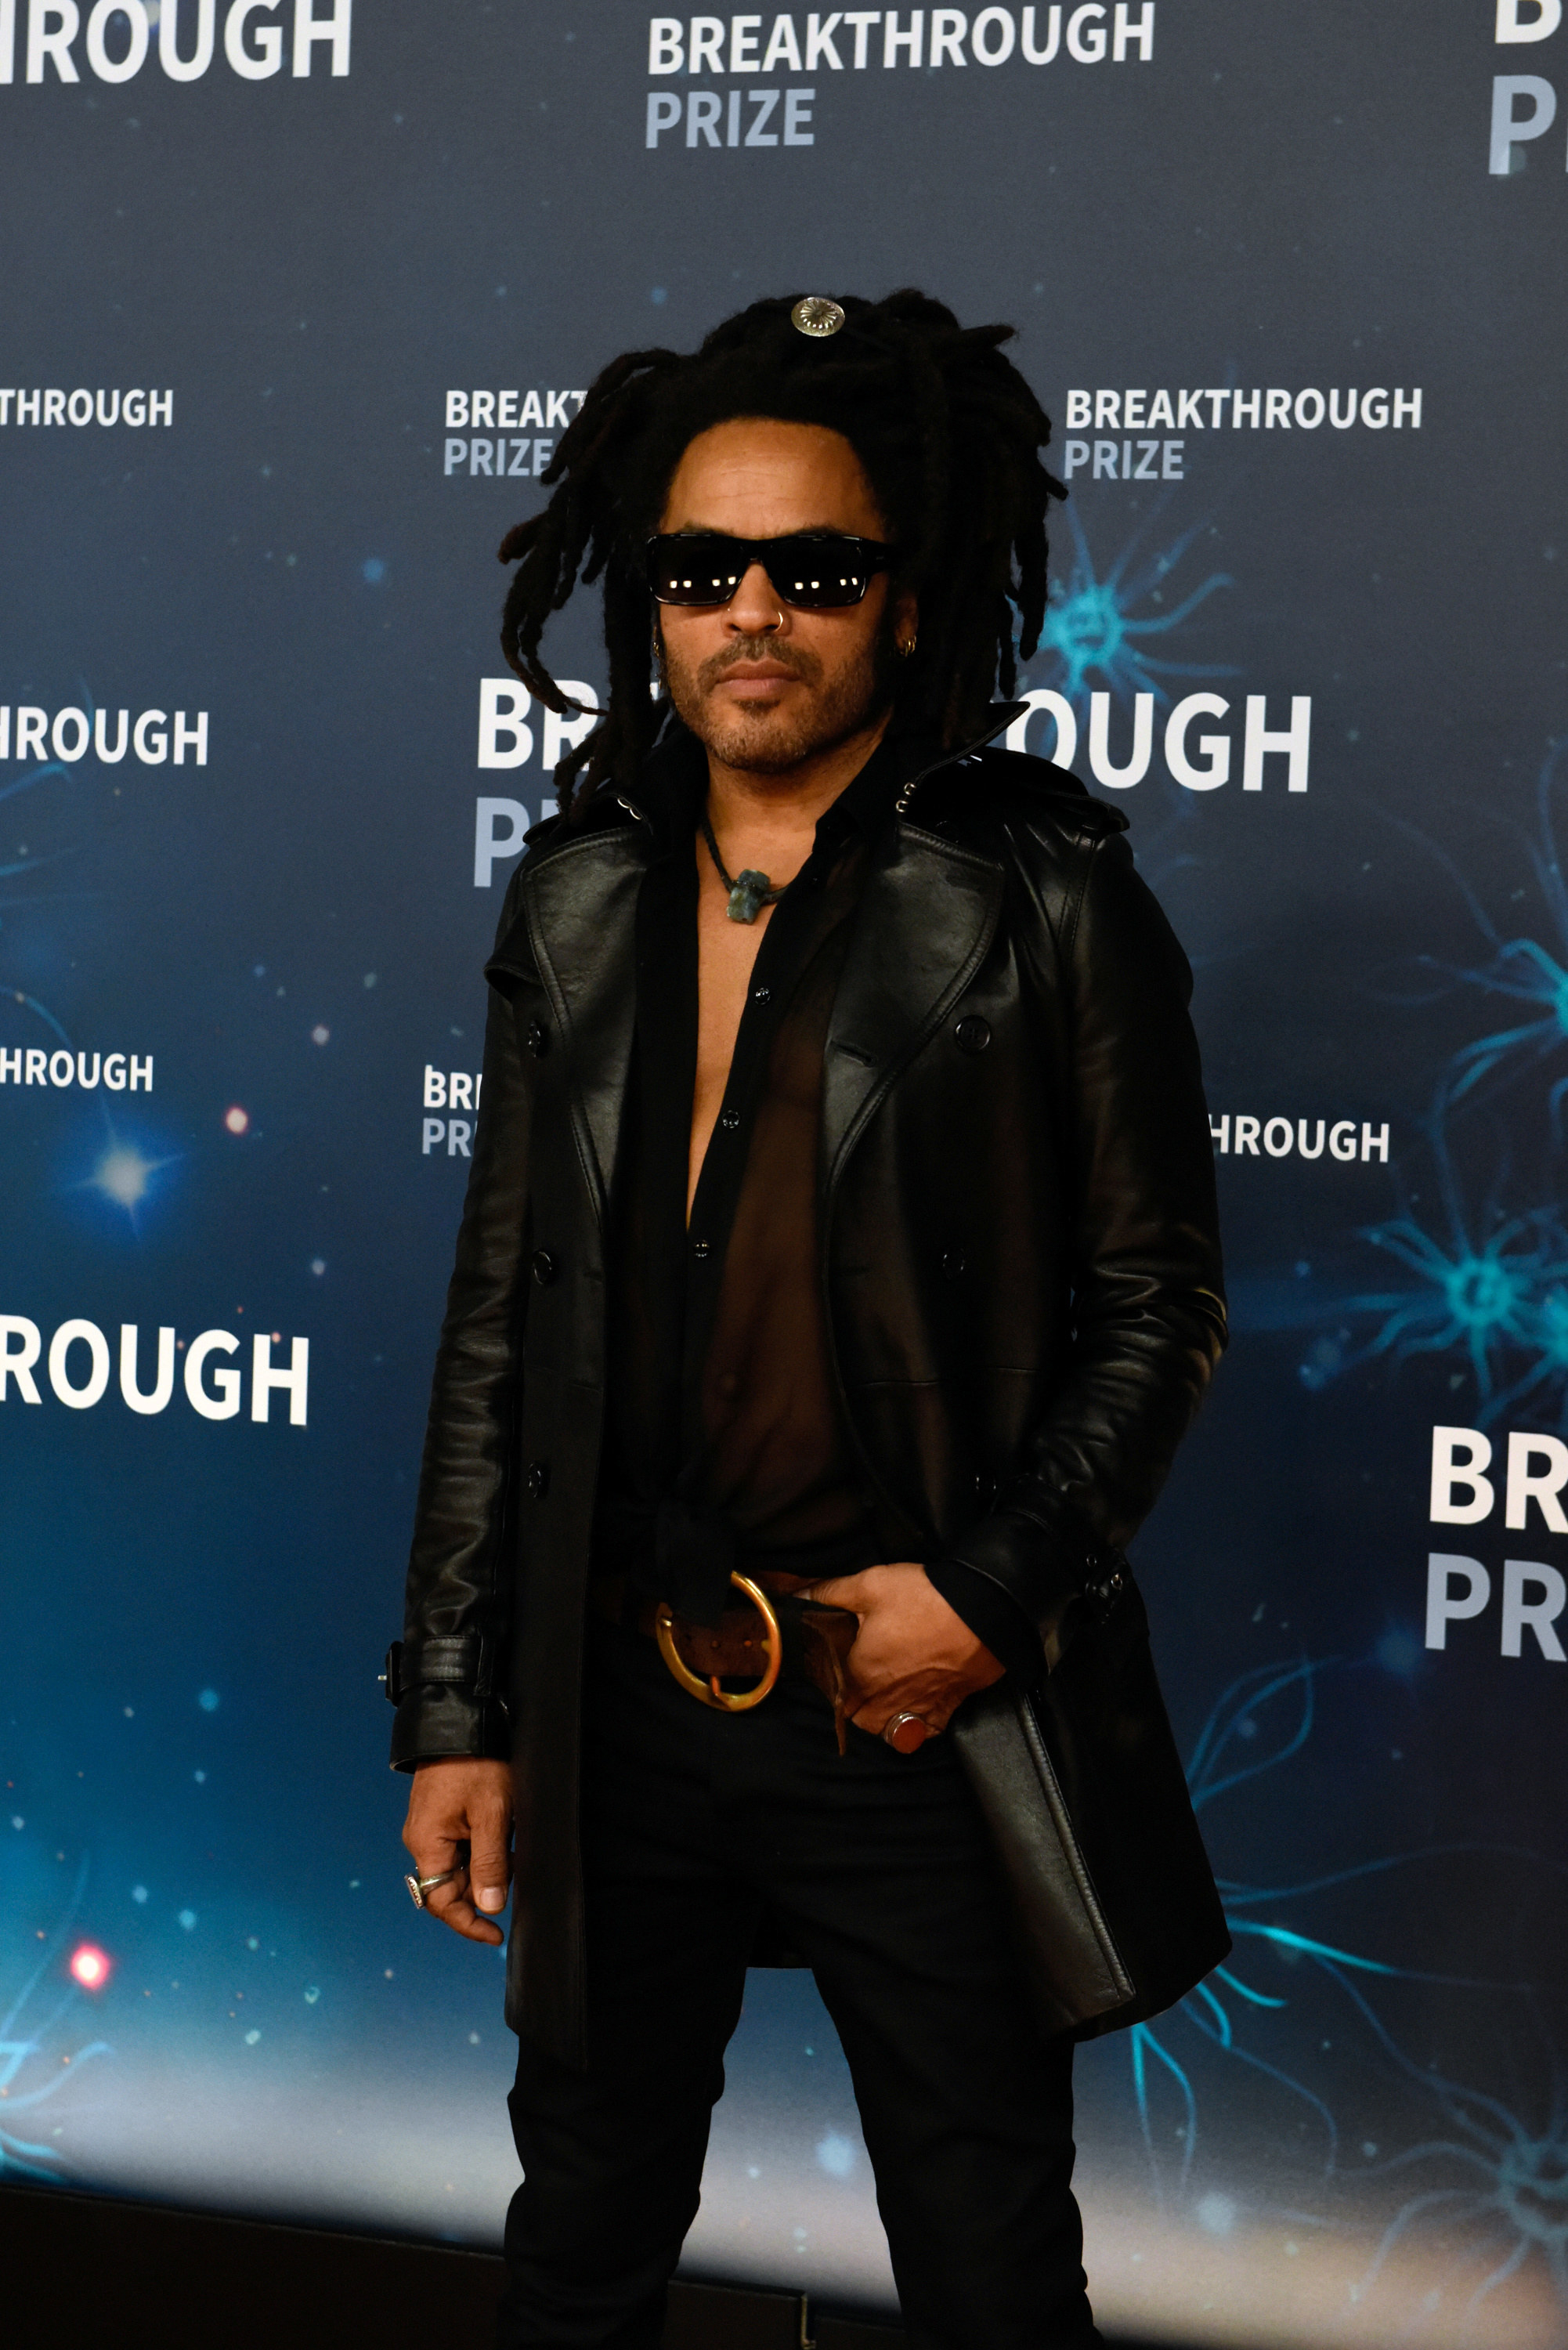 Lenny Kravitz is pictured at a red carpet event